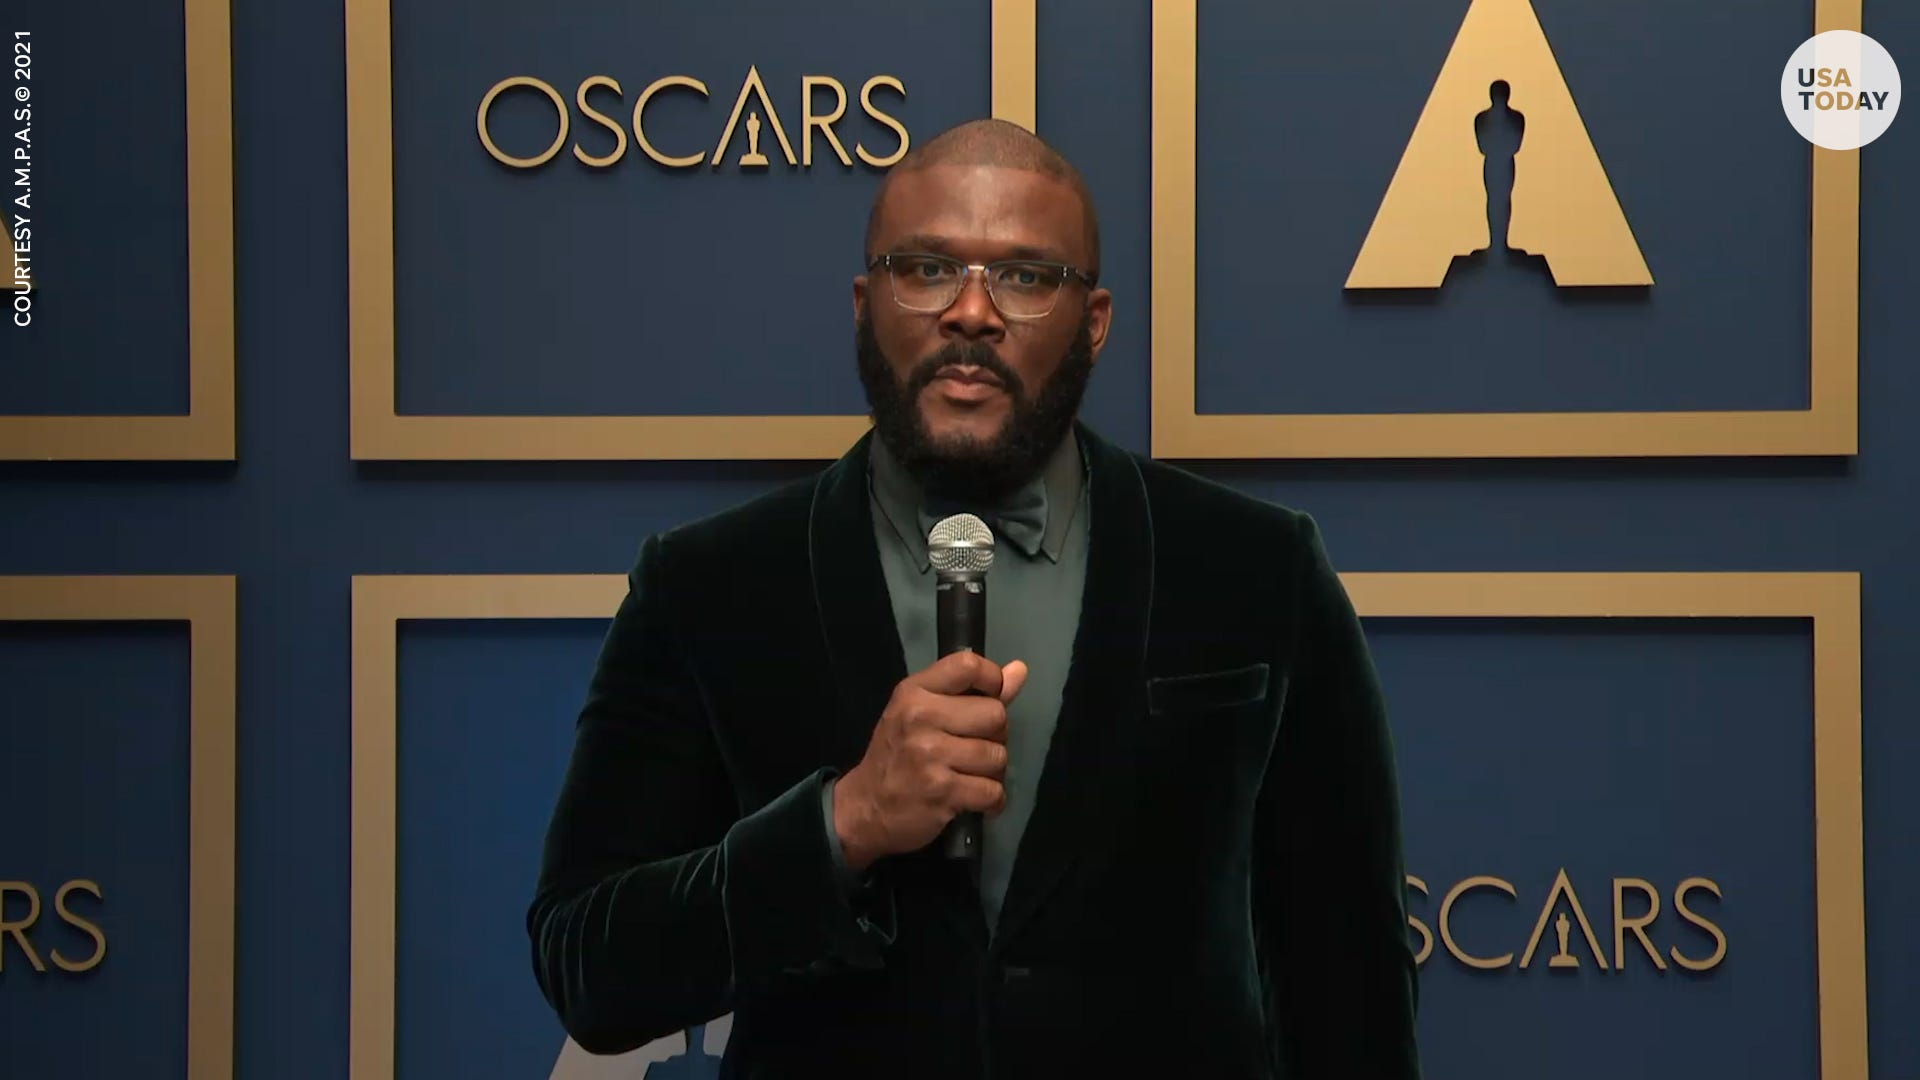 Tyler Perry called to 'refuse hate,'and meet in the middle during his Oscars 2021 speech